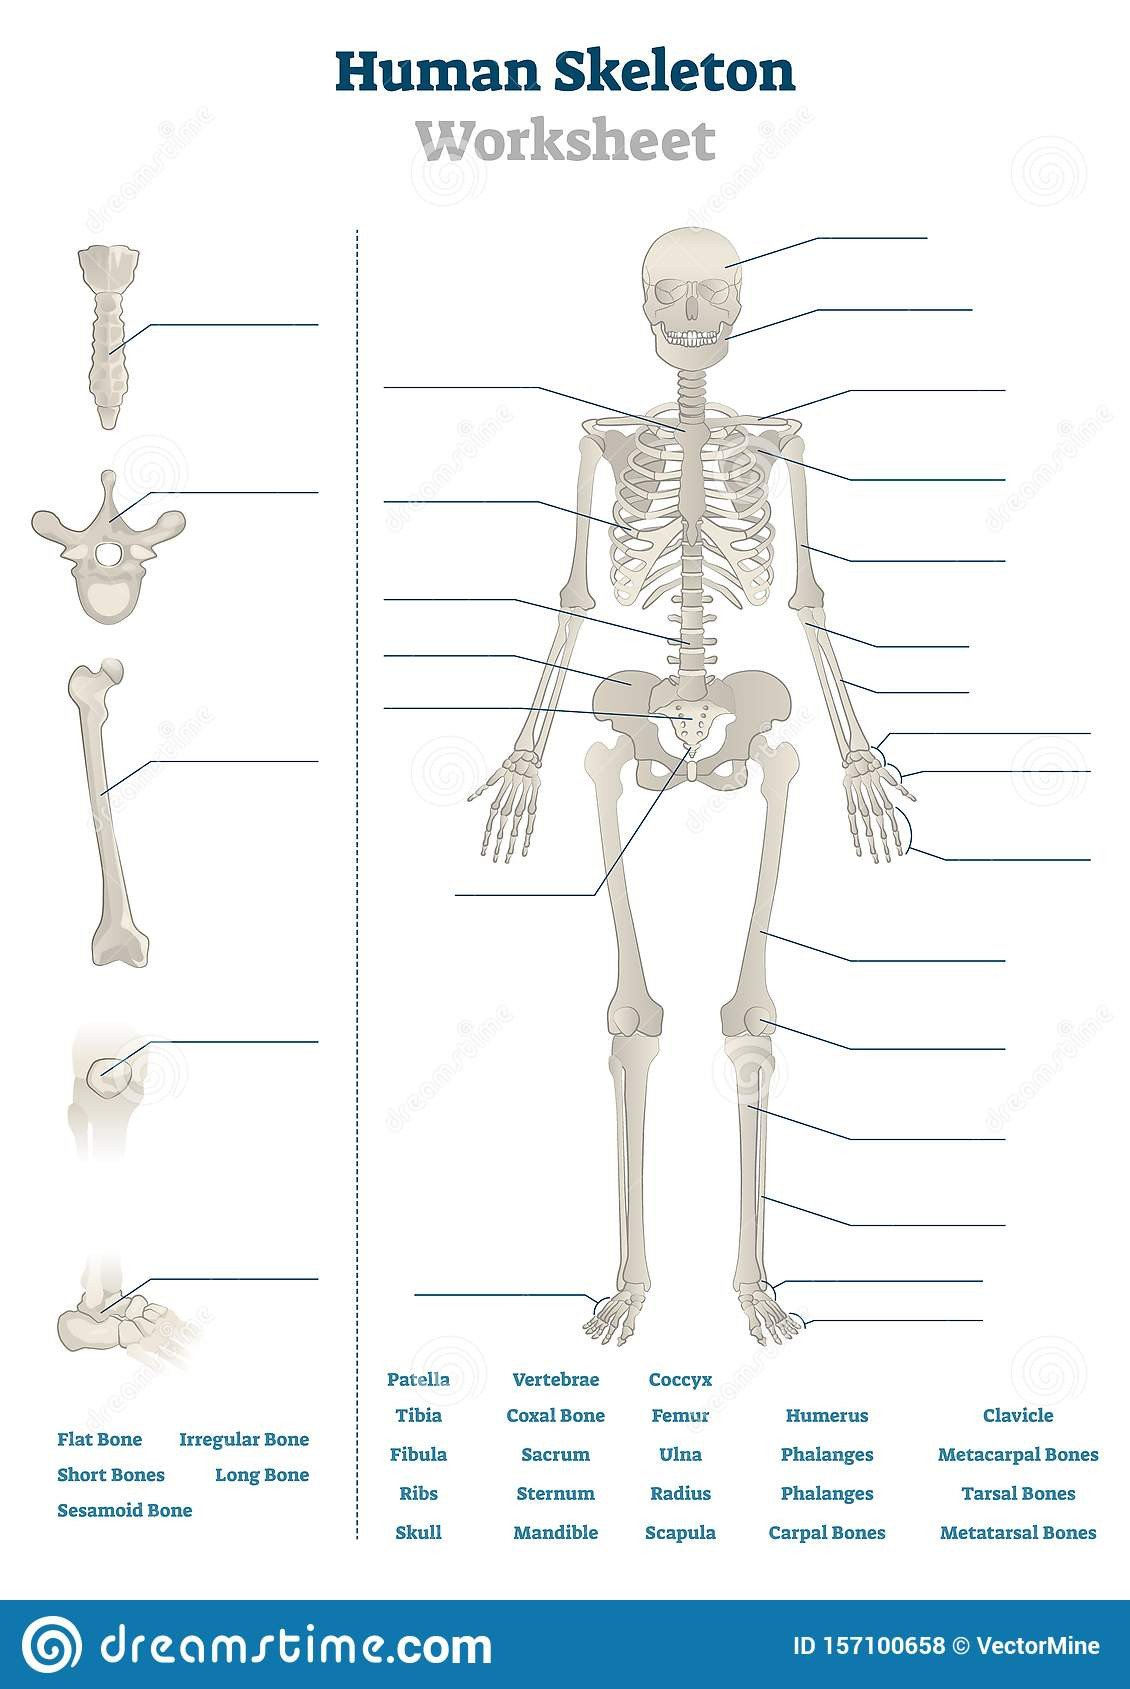 Blank Skeletal System Worksheet Human Skeleton Worksheet Vector Illustration Blank